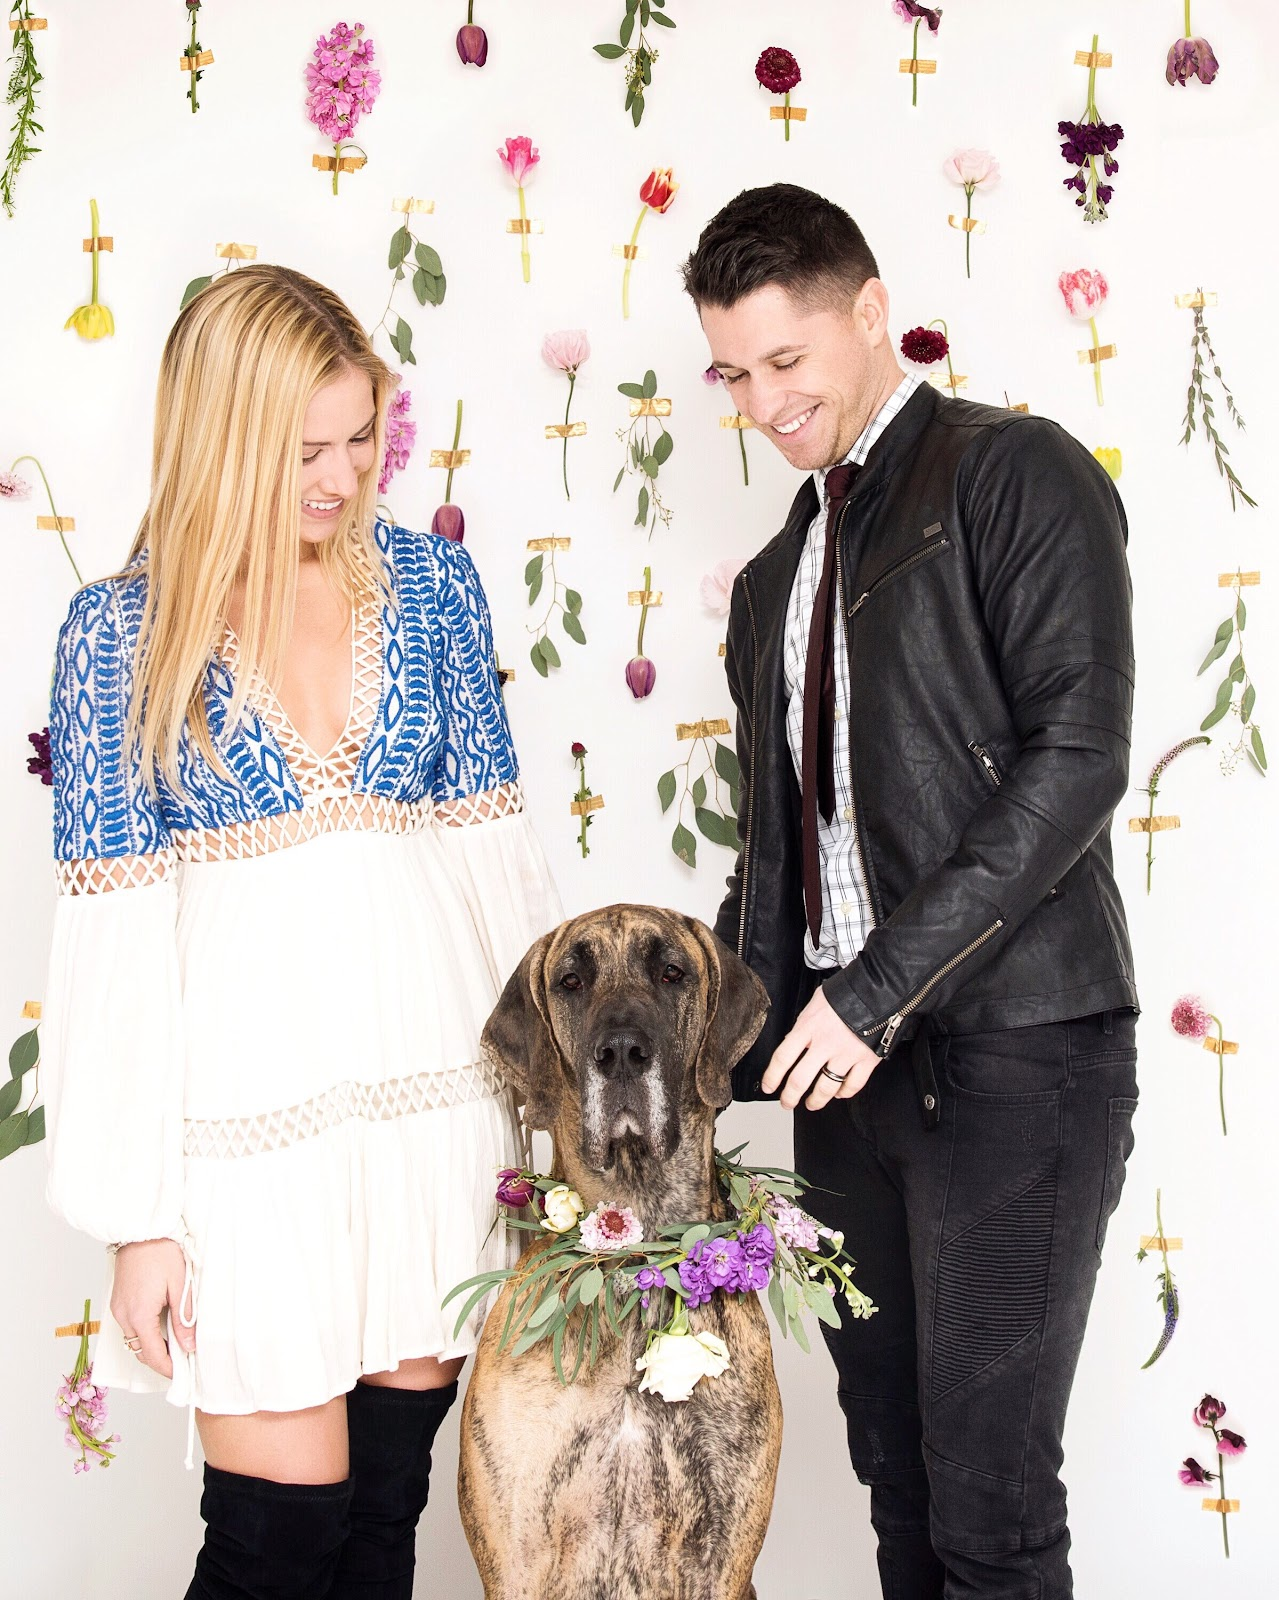 Emily, her husband and Great Dane